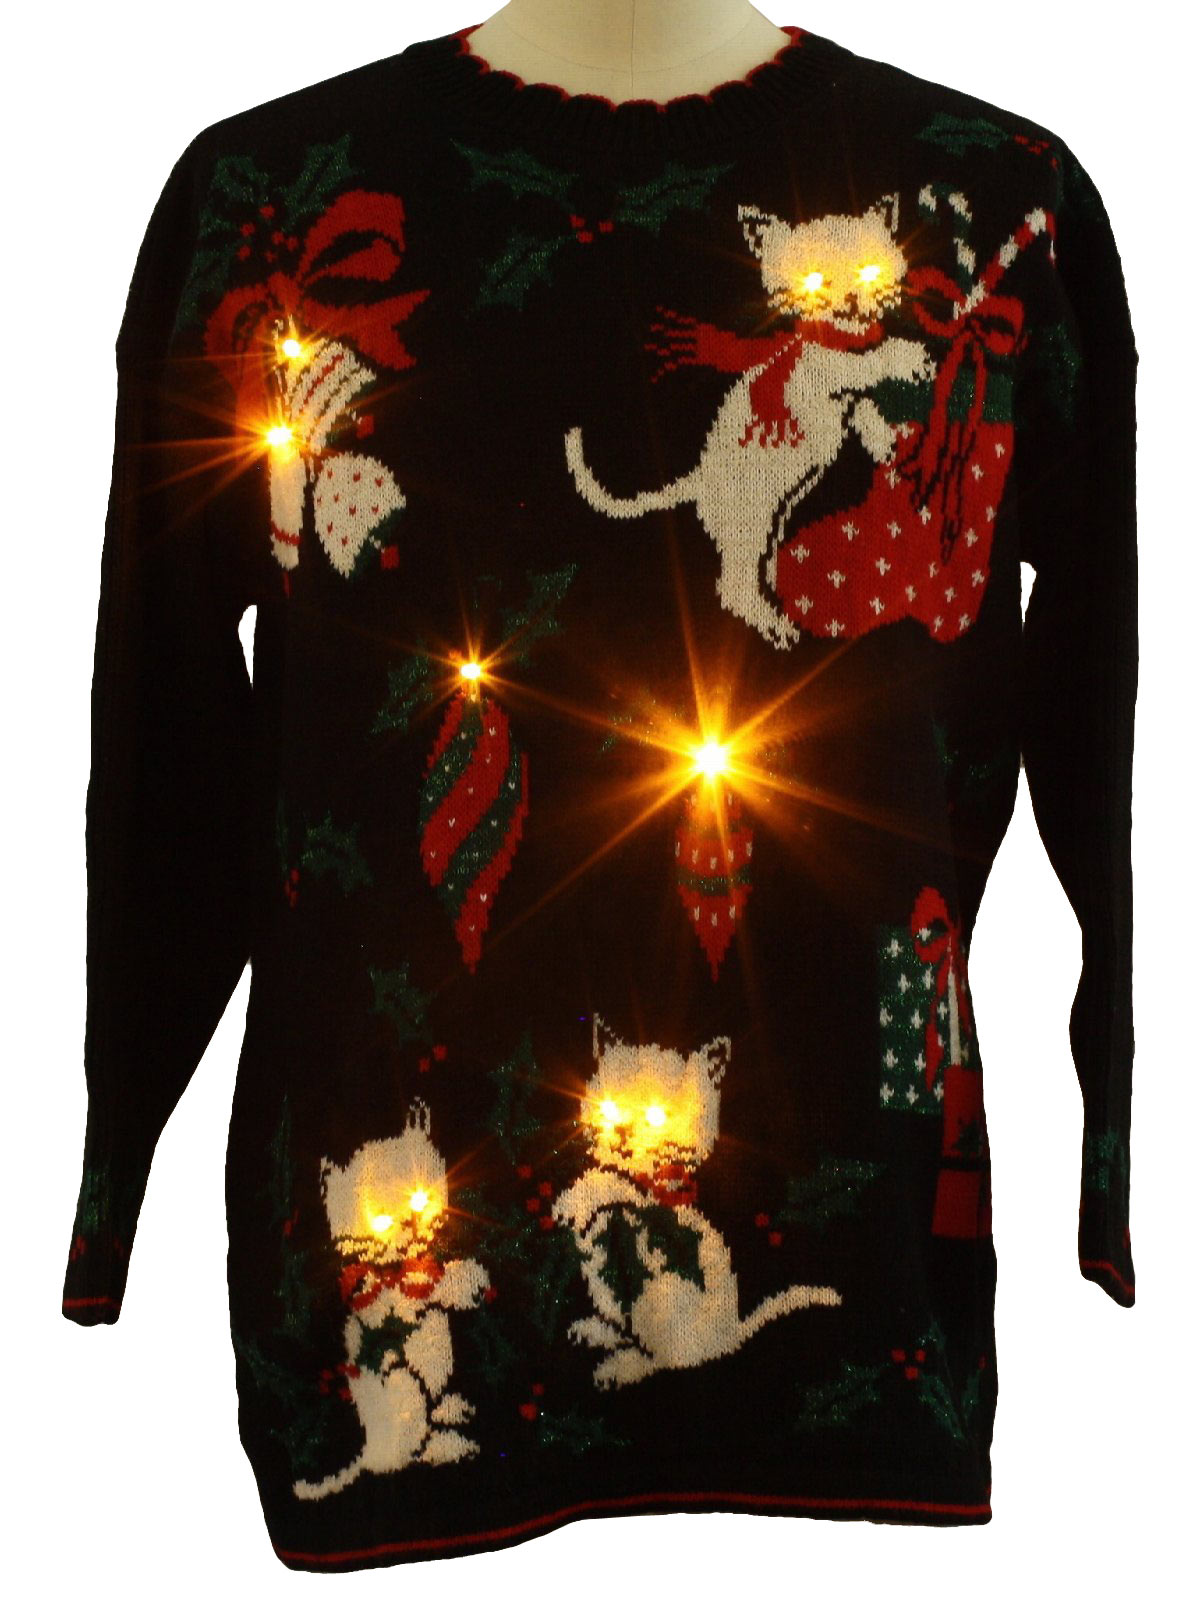 Kitten Christmas Sweater.20 Ugly Christmas Sweaters Featuring Cats With Which To